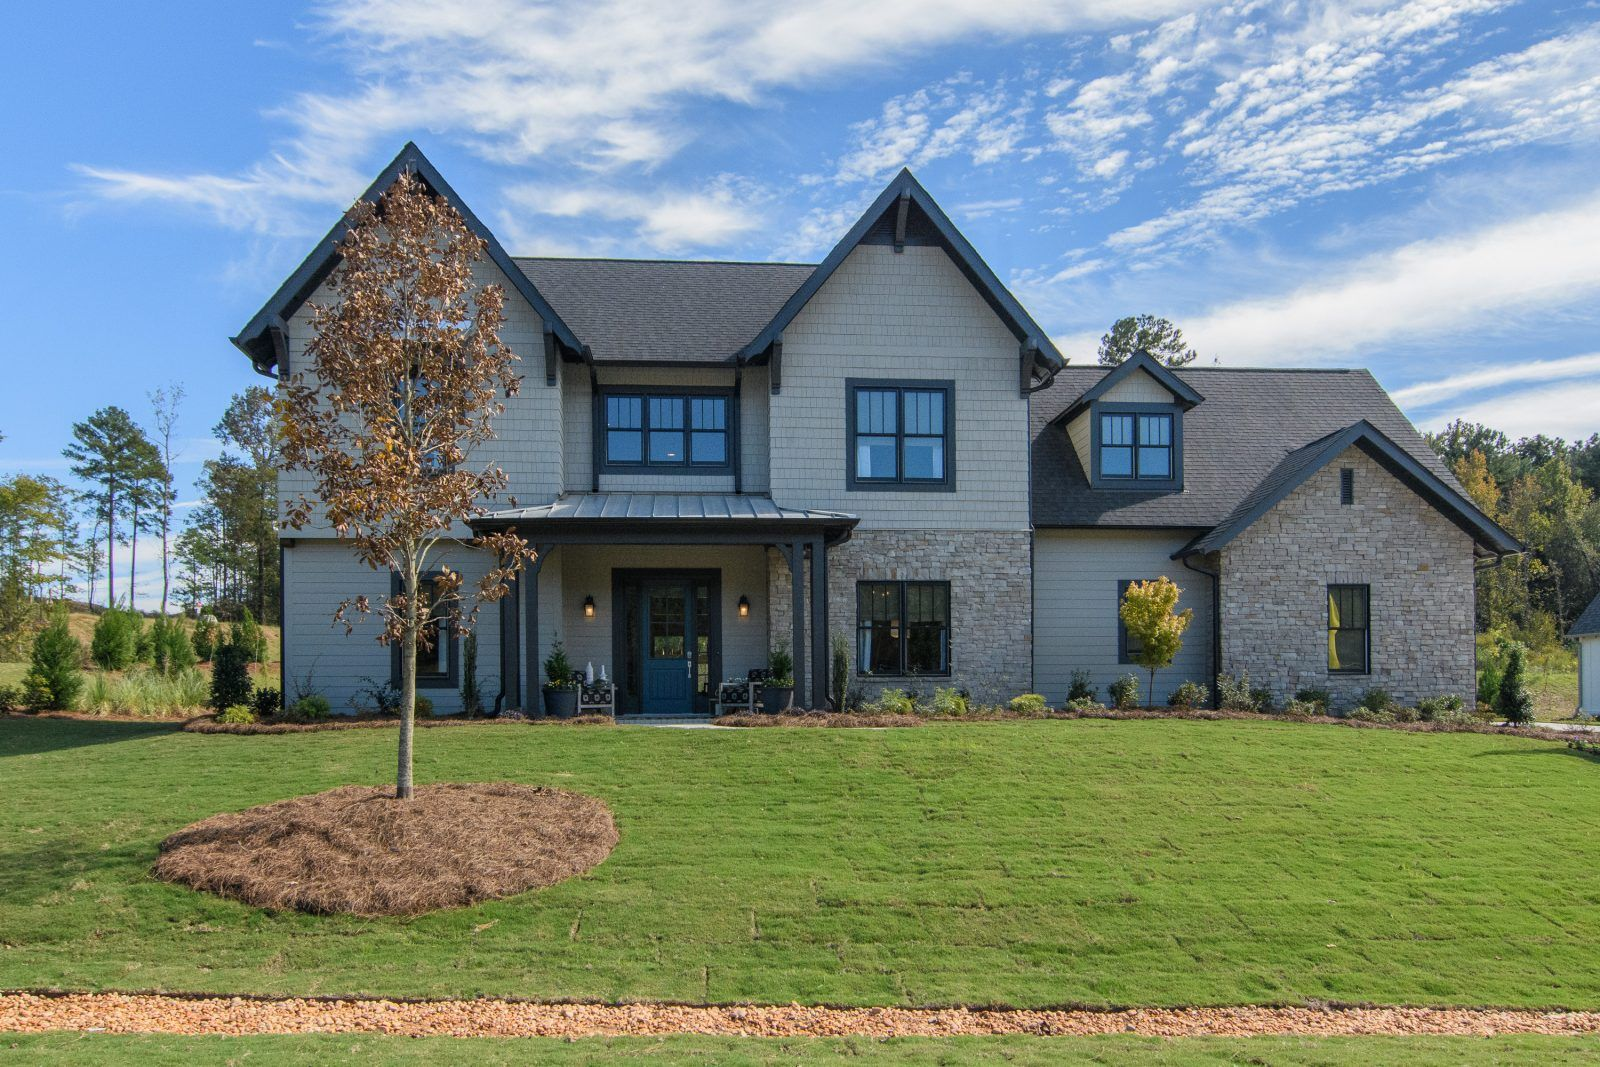 Unifamiliar por un Venta en Keeneland 2b- Homesite 1038 2348 Blackridge Drive Hoover, Alabama 35244 United States